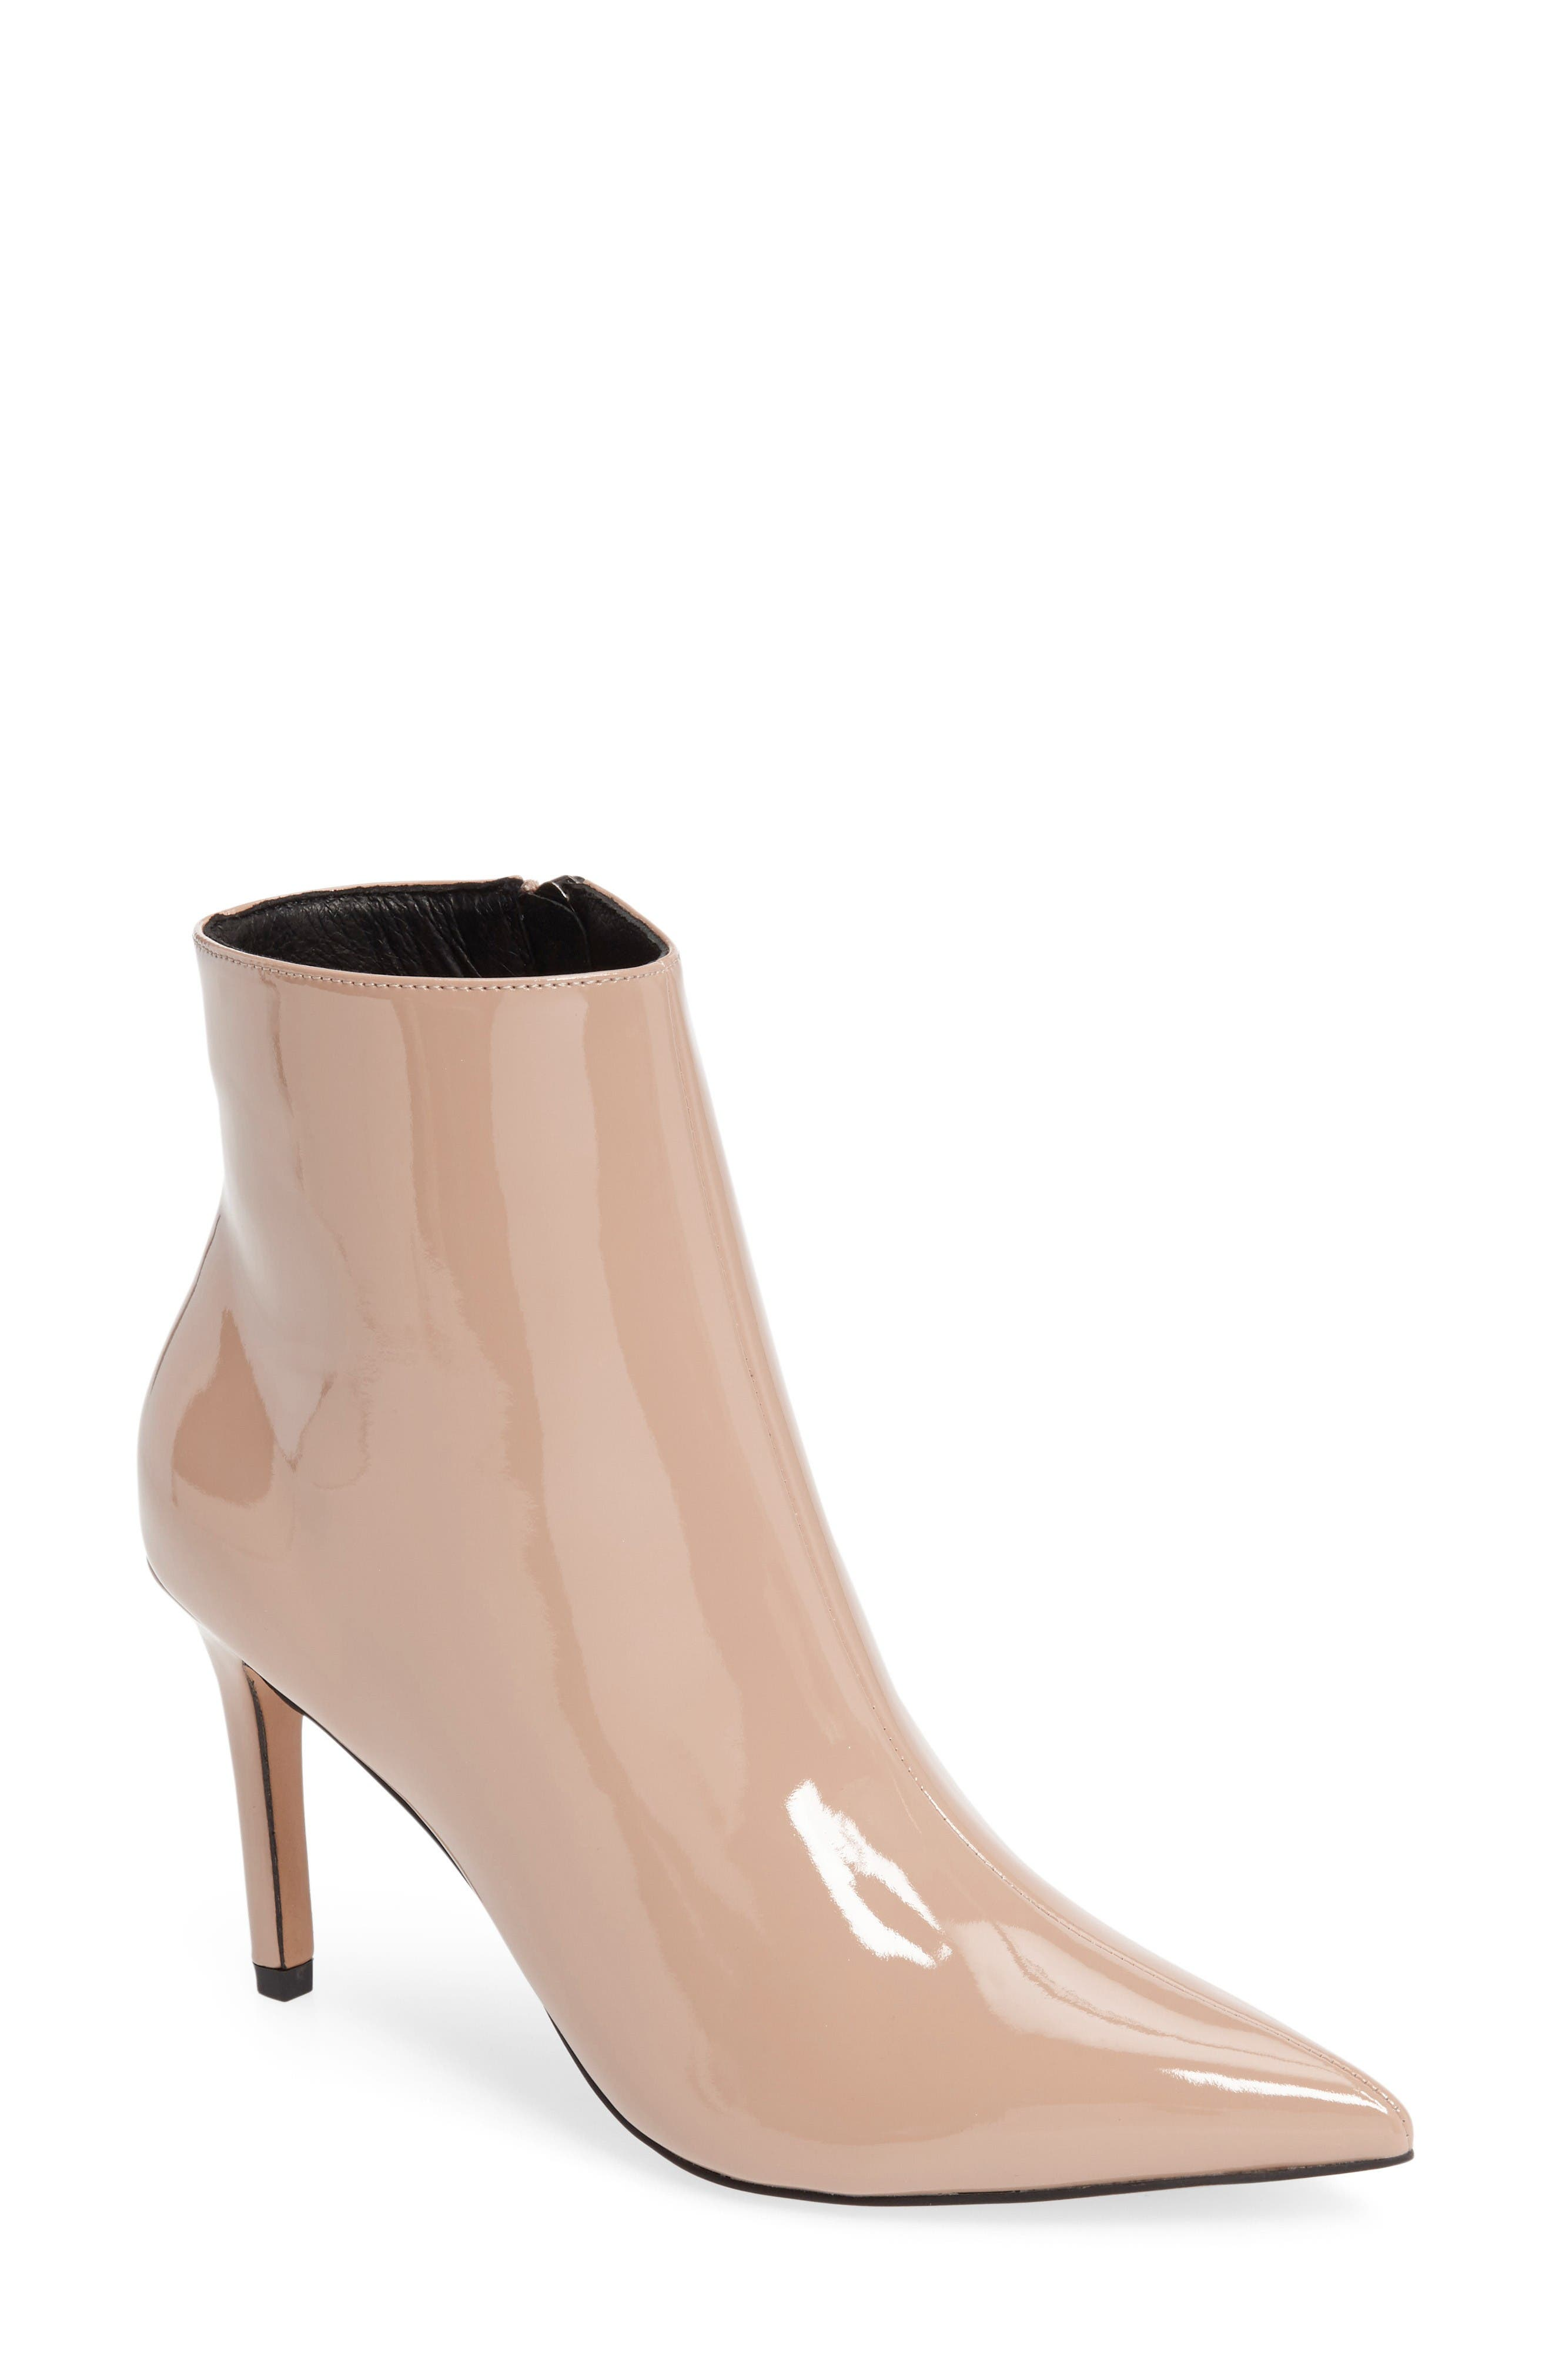 Mimosa Pointy Toe Bootie,                             Main thumbnail 1, color,                             Nude